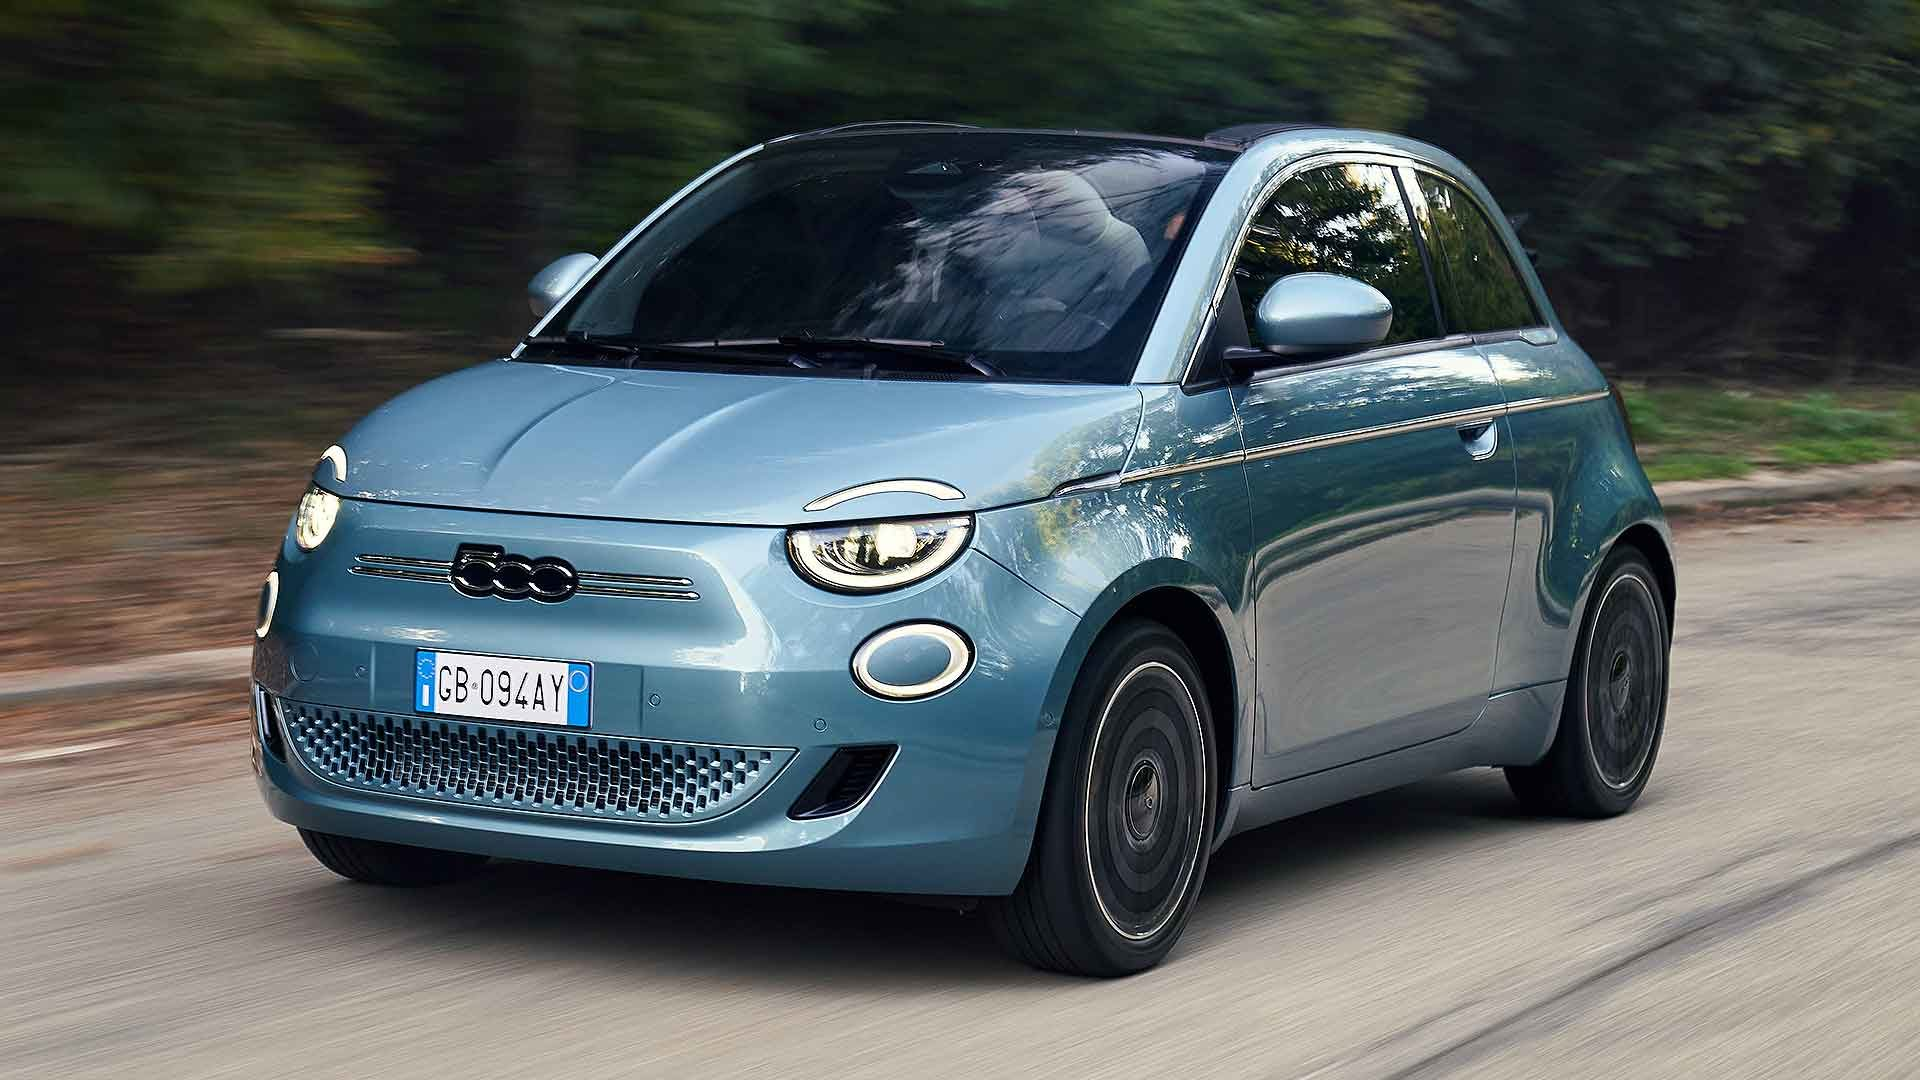 New Fiat 500: prices, specs and release date of Fiat's all-electric city car